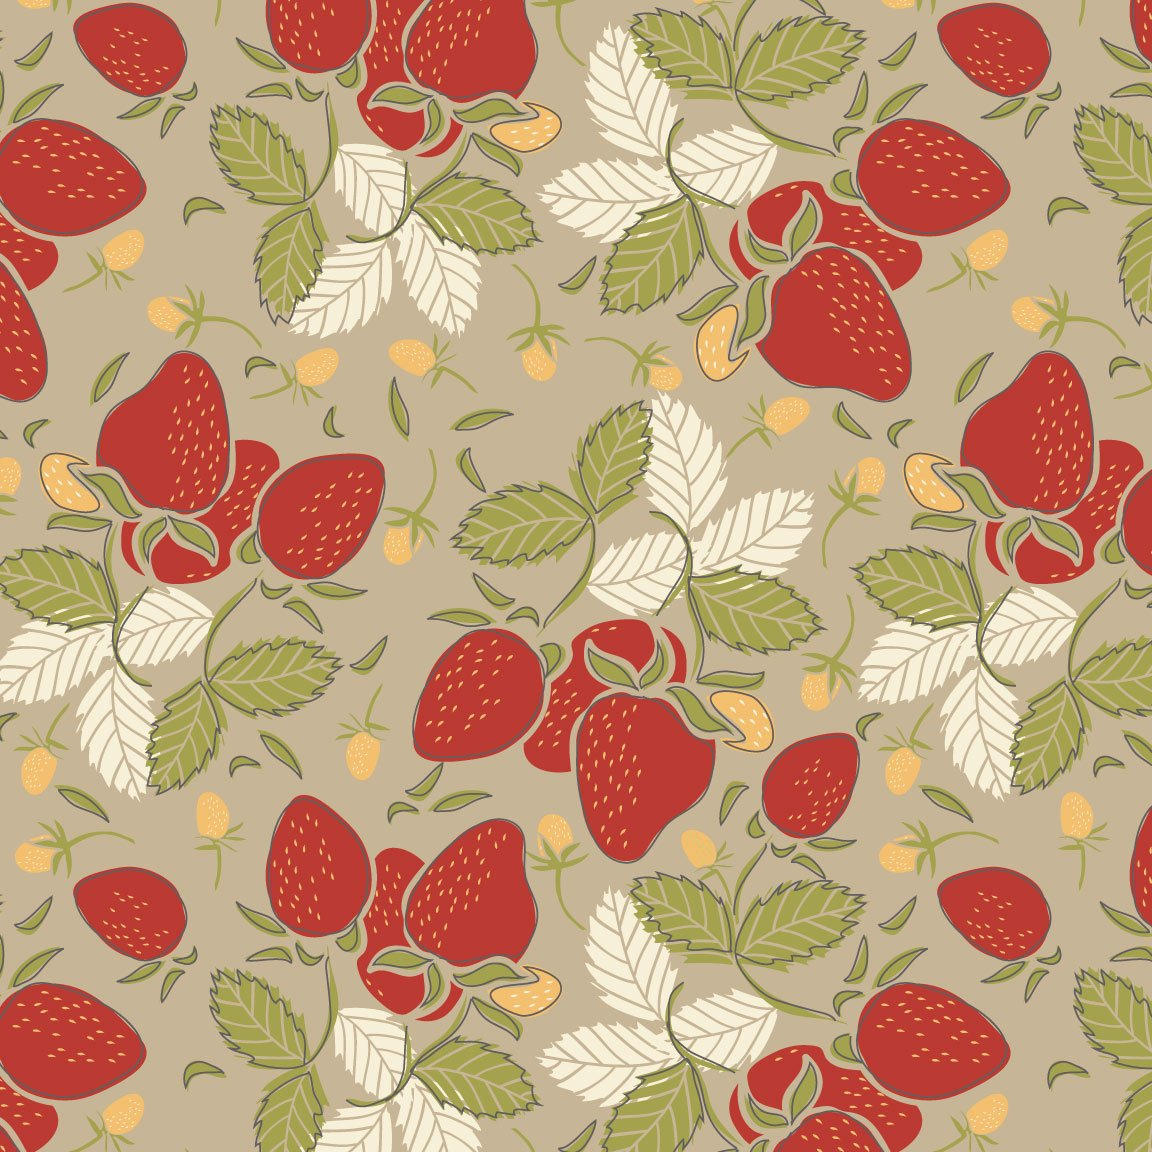 Vintage Berries - Strawberries Tan